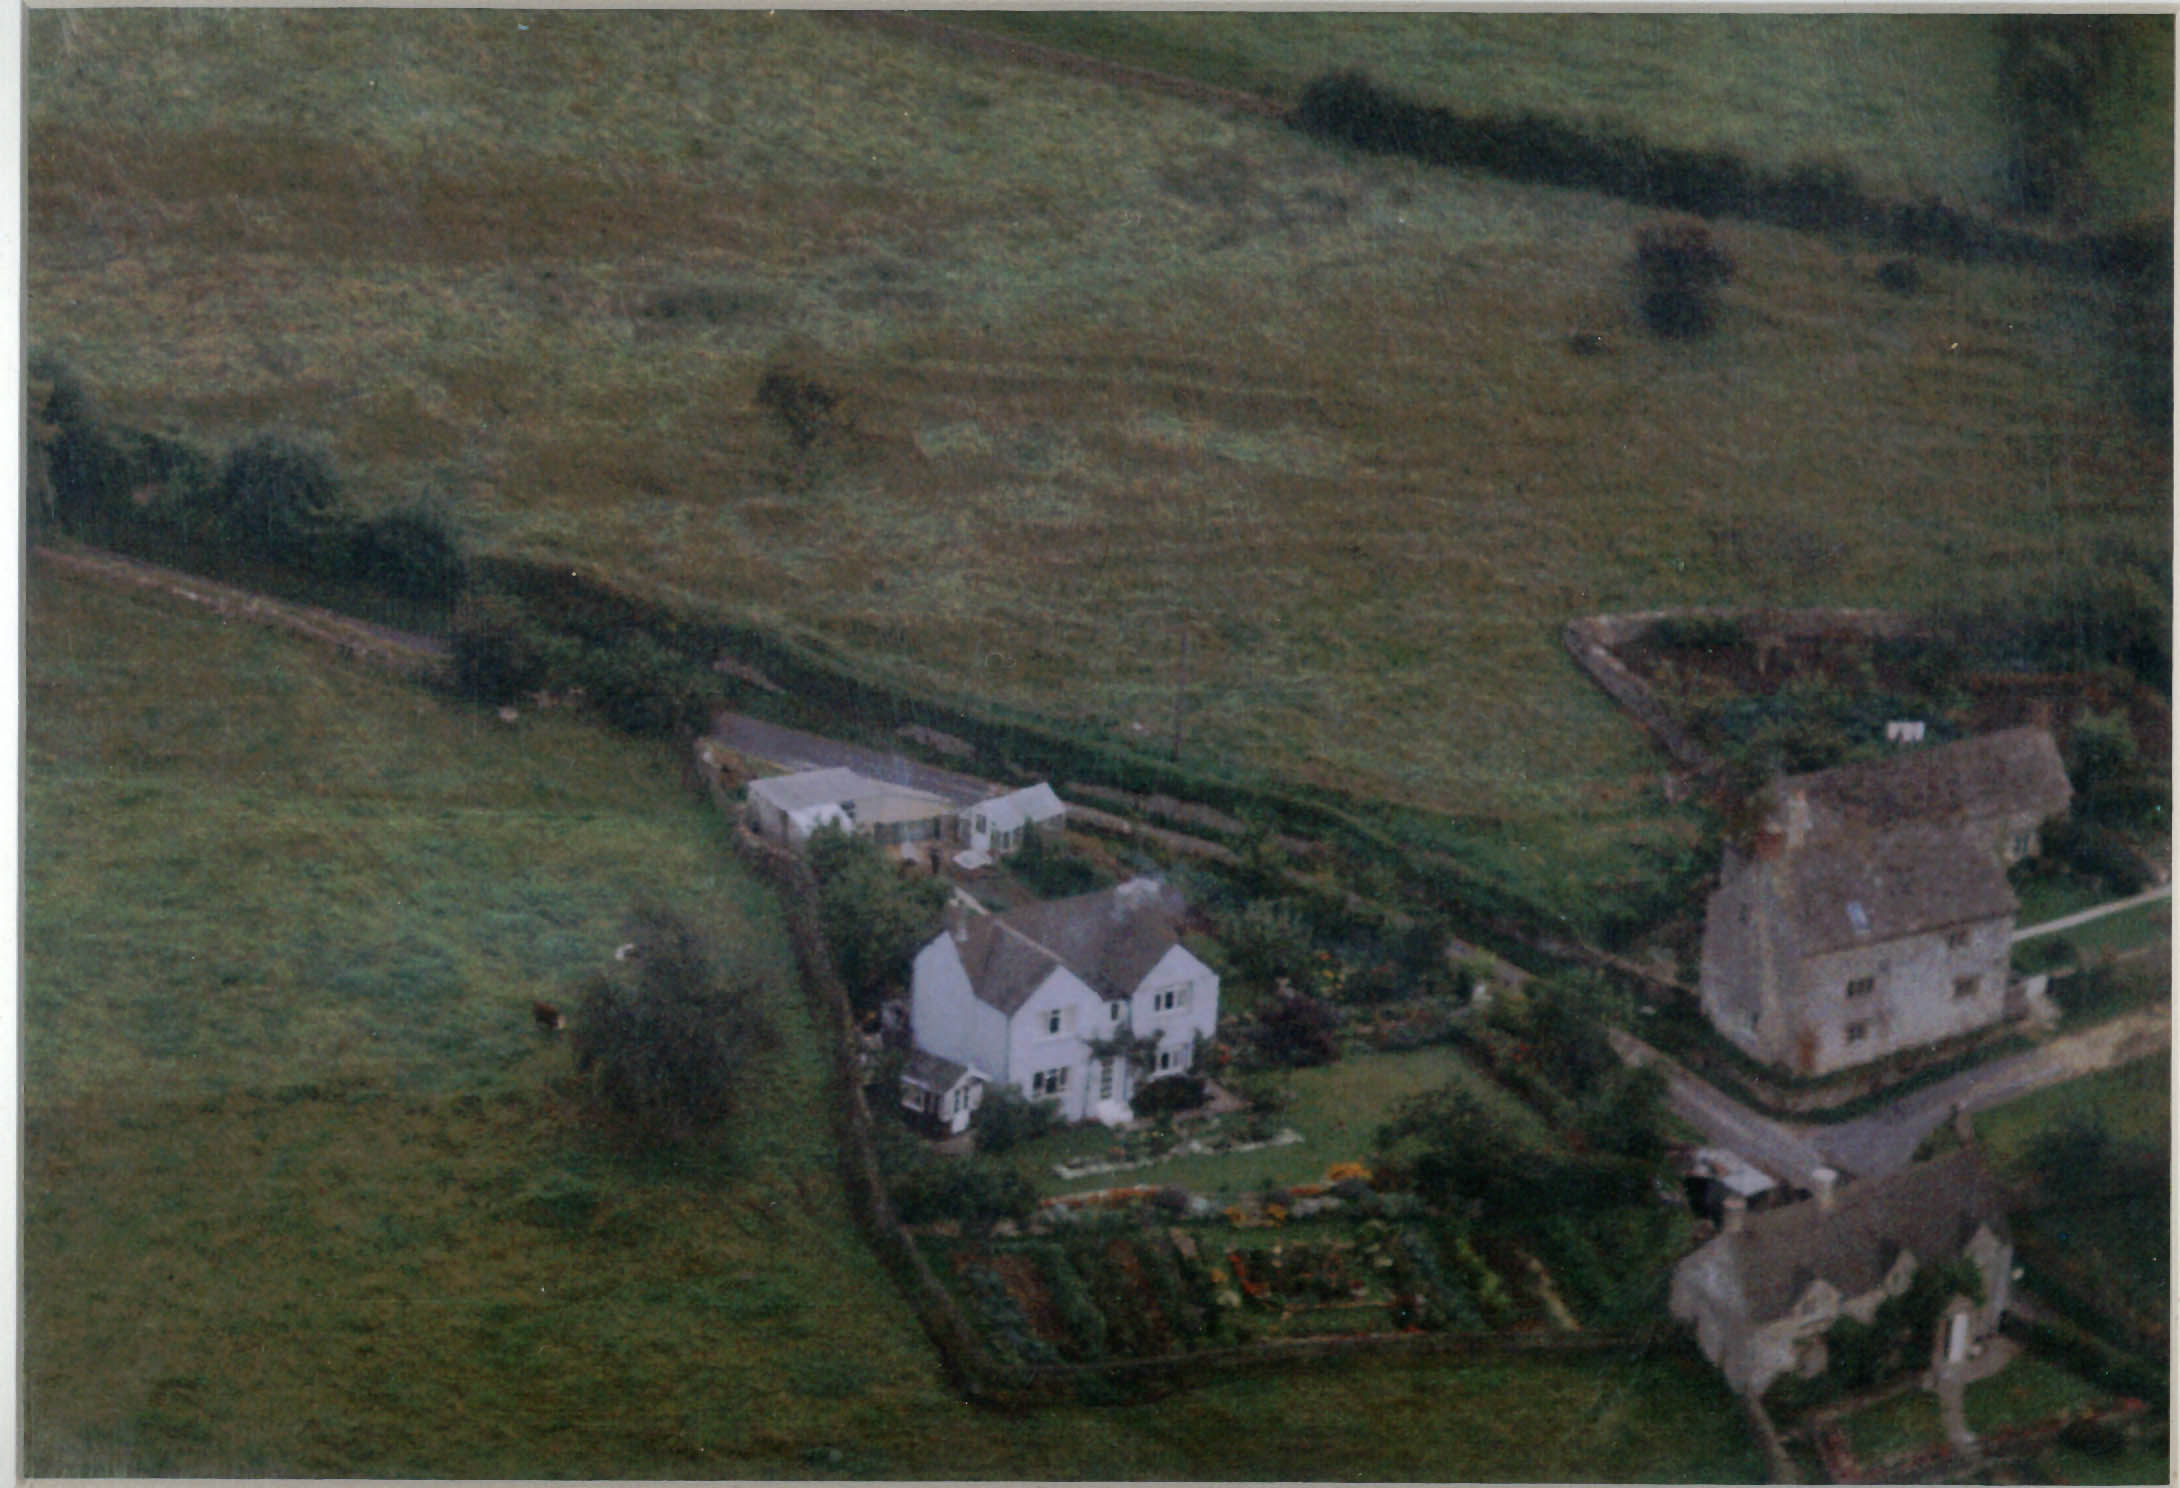 Aerial photo taken in 1962 of Cook's Hill with Hill Farm, Wellspring & Laurel Cottage. Note much less vegetation compared to today.